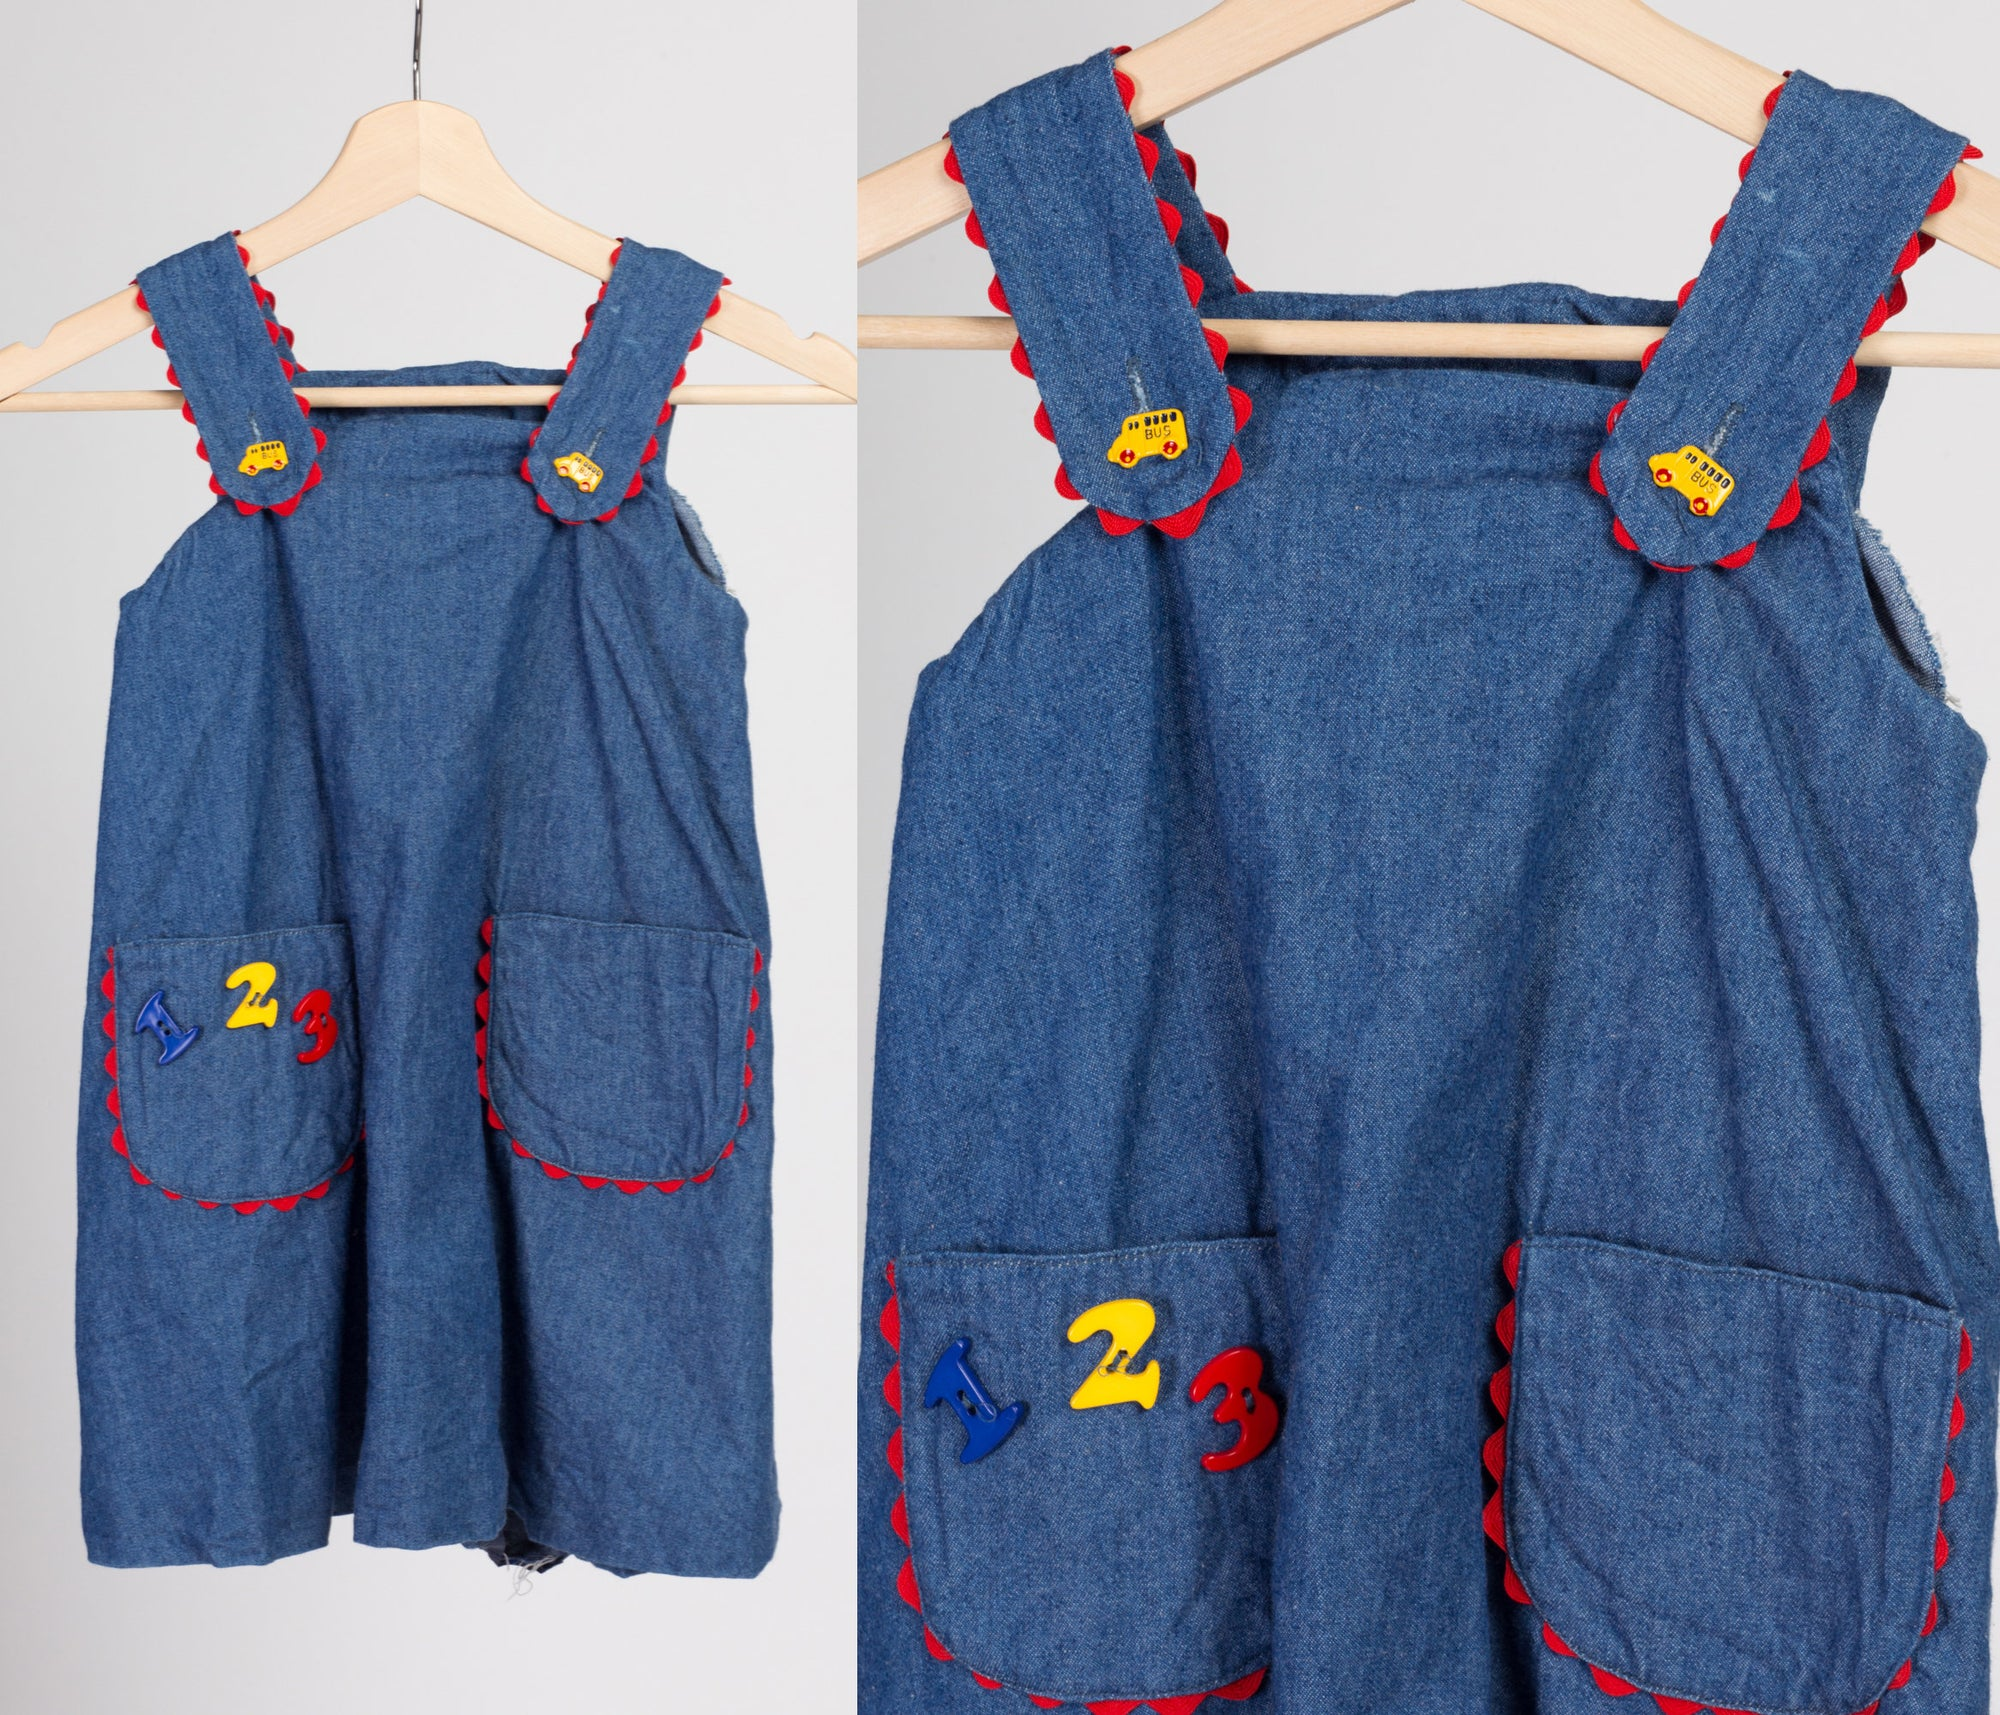 Vintage Toddler Girl's Denim Pinafore Dress - 18-24m